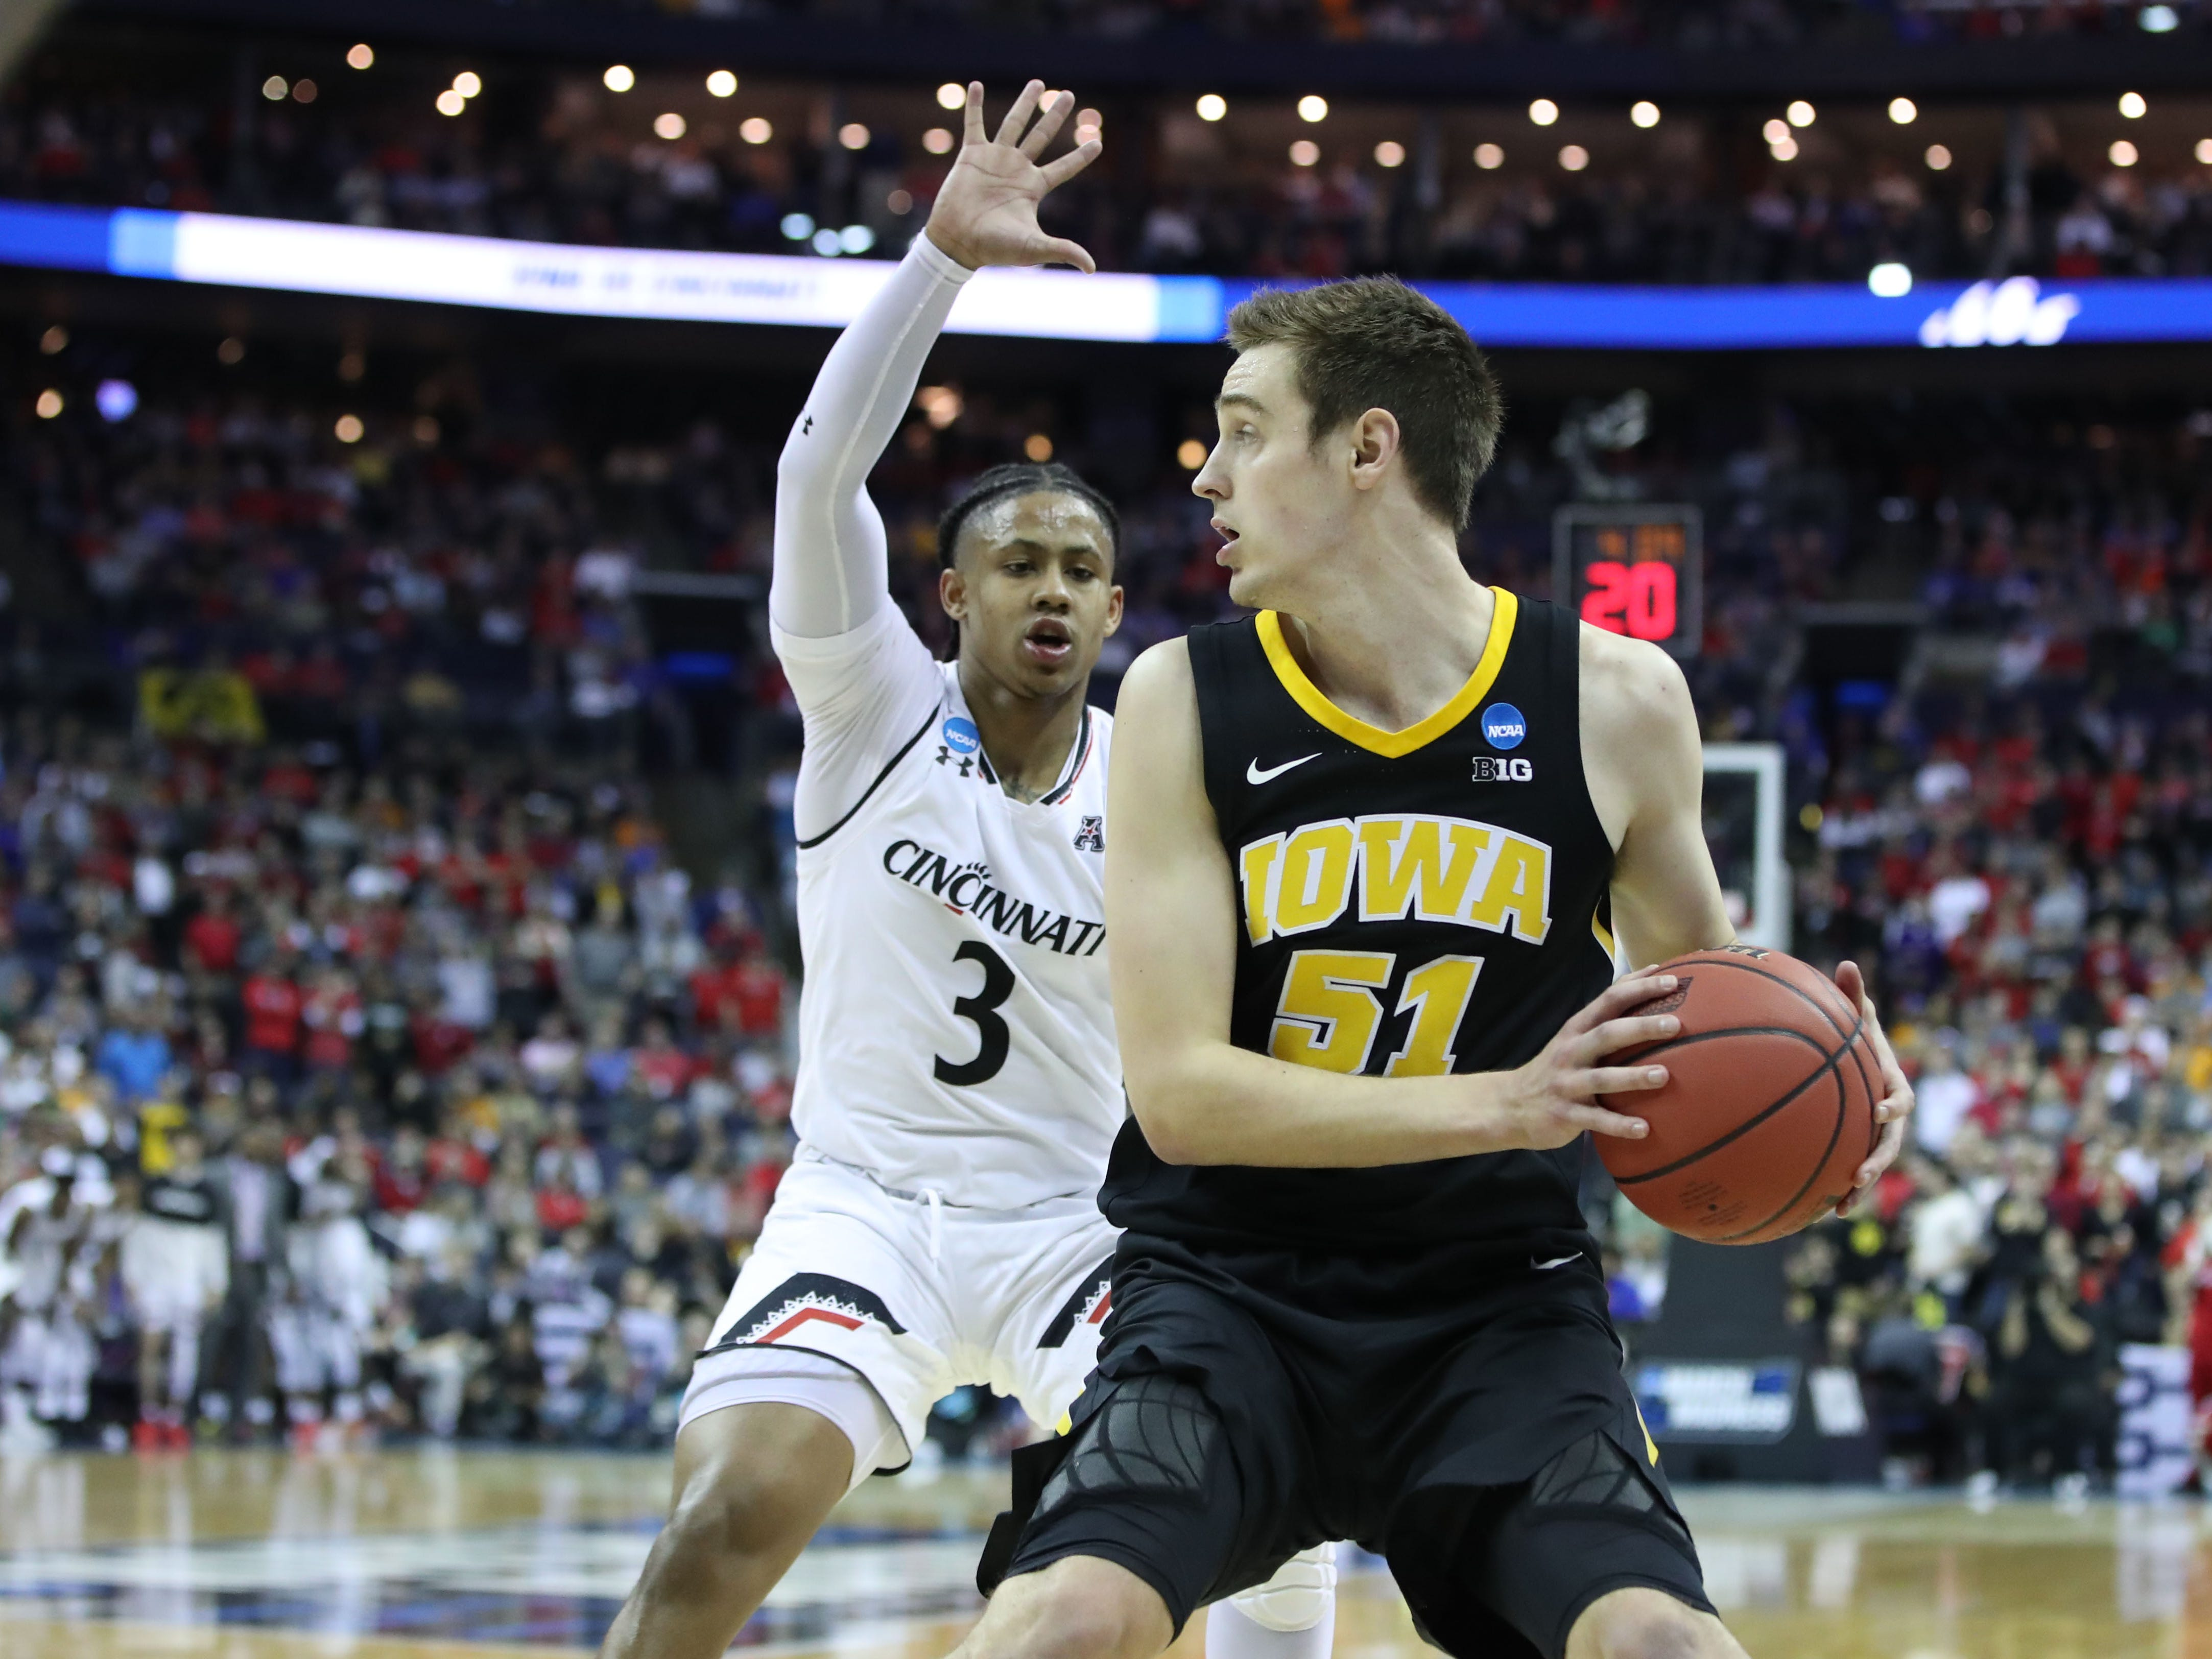 Iowa Hawkeyes forward Nicholas Baer (51) looks to move the ball defended by Cincinnati Bearcats guard Justin Jenifer (3) in the second half in the first round of the 2019 NCAA Tournament at Nationwide Arena on March 22, 2019.